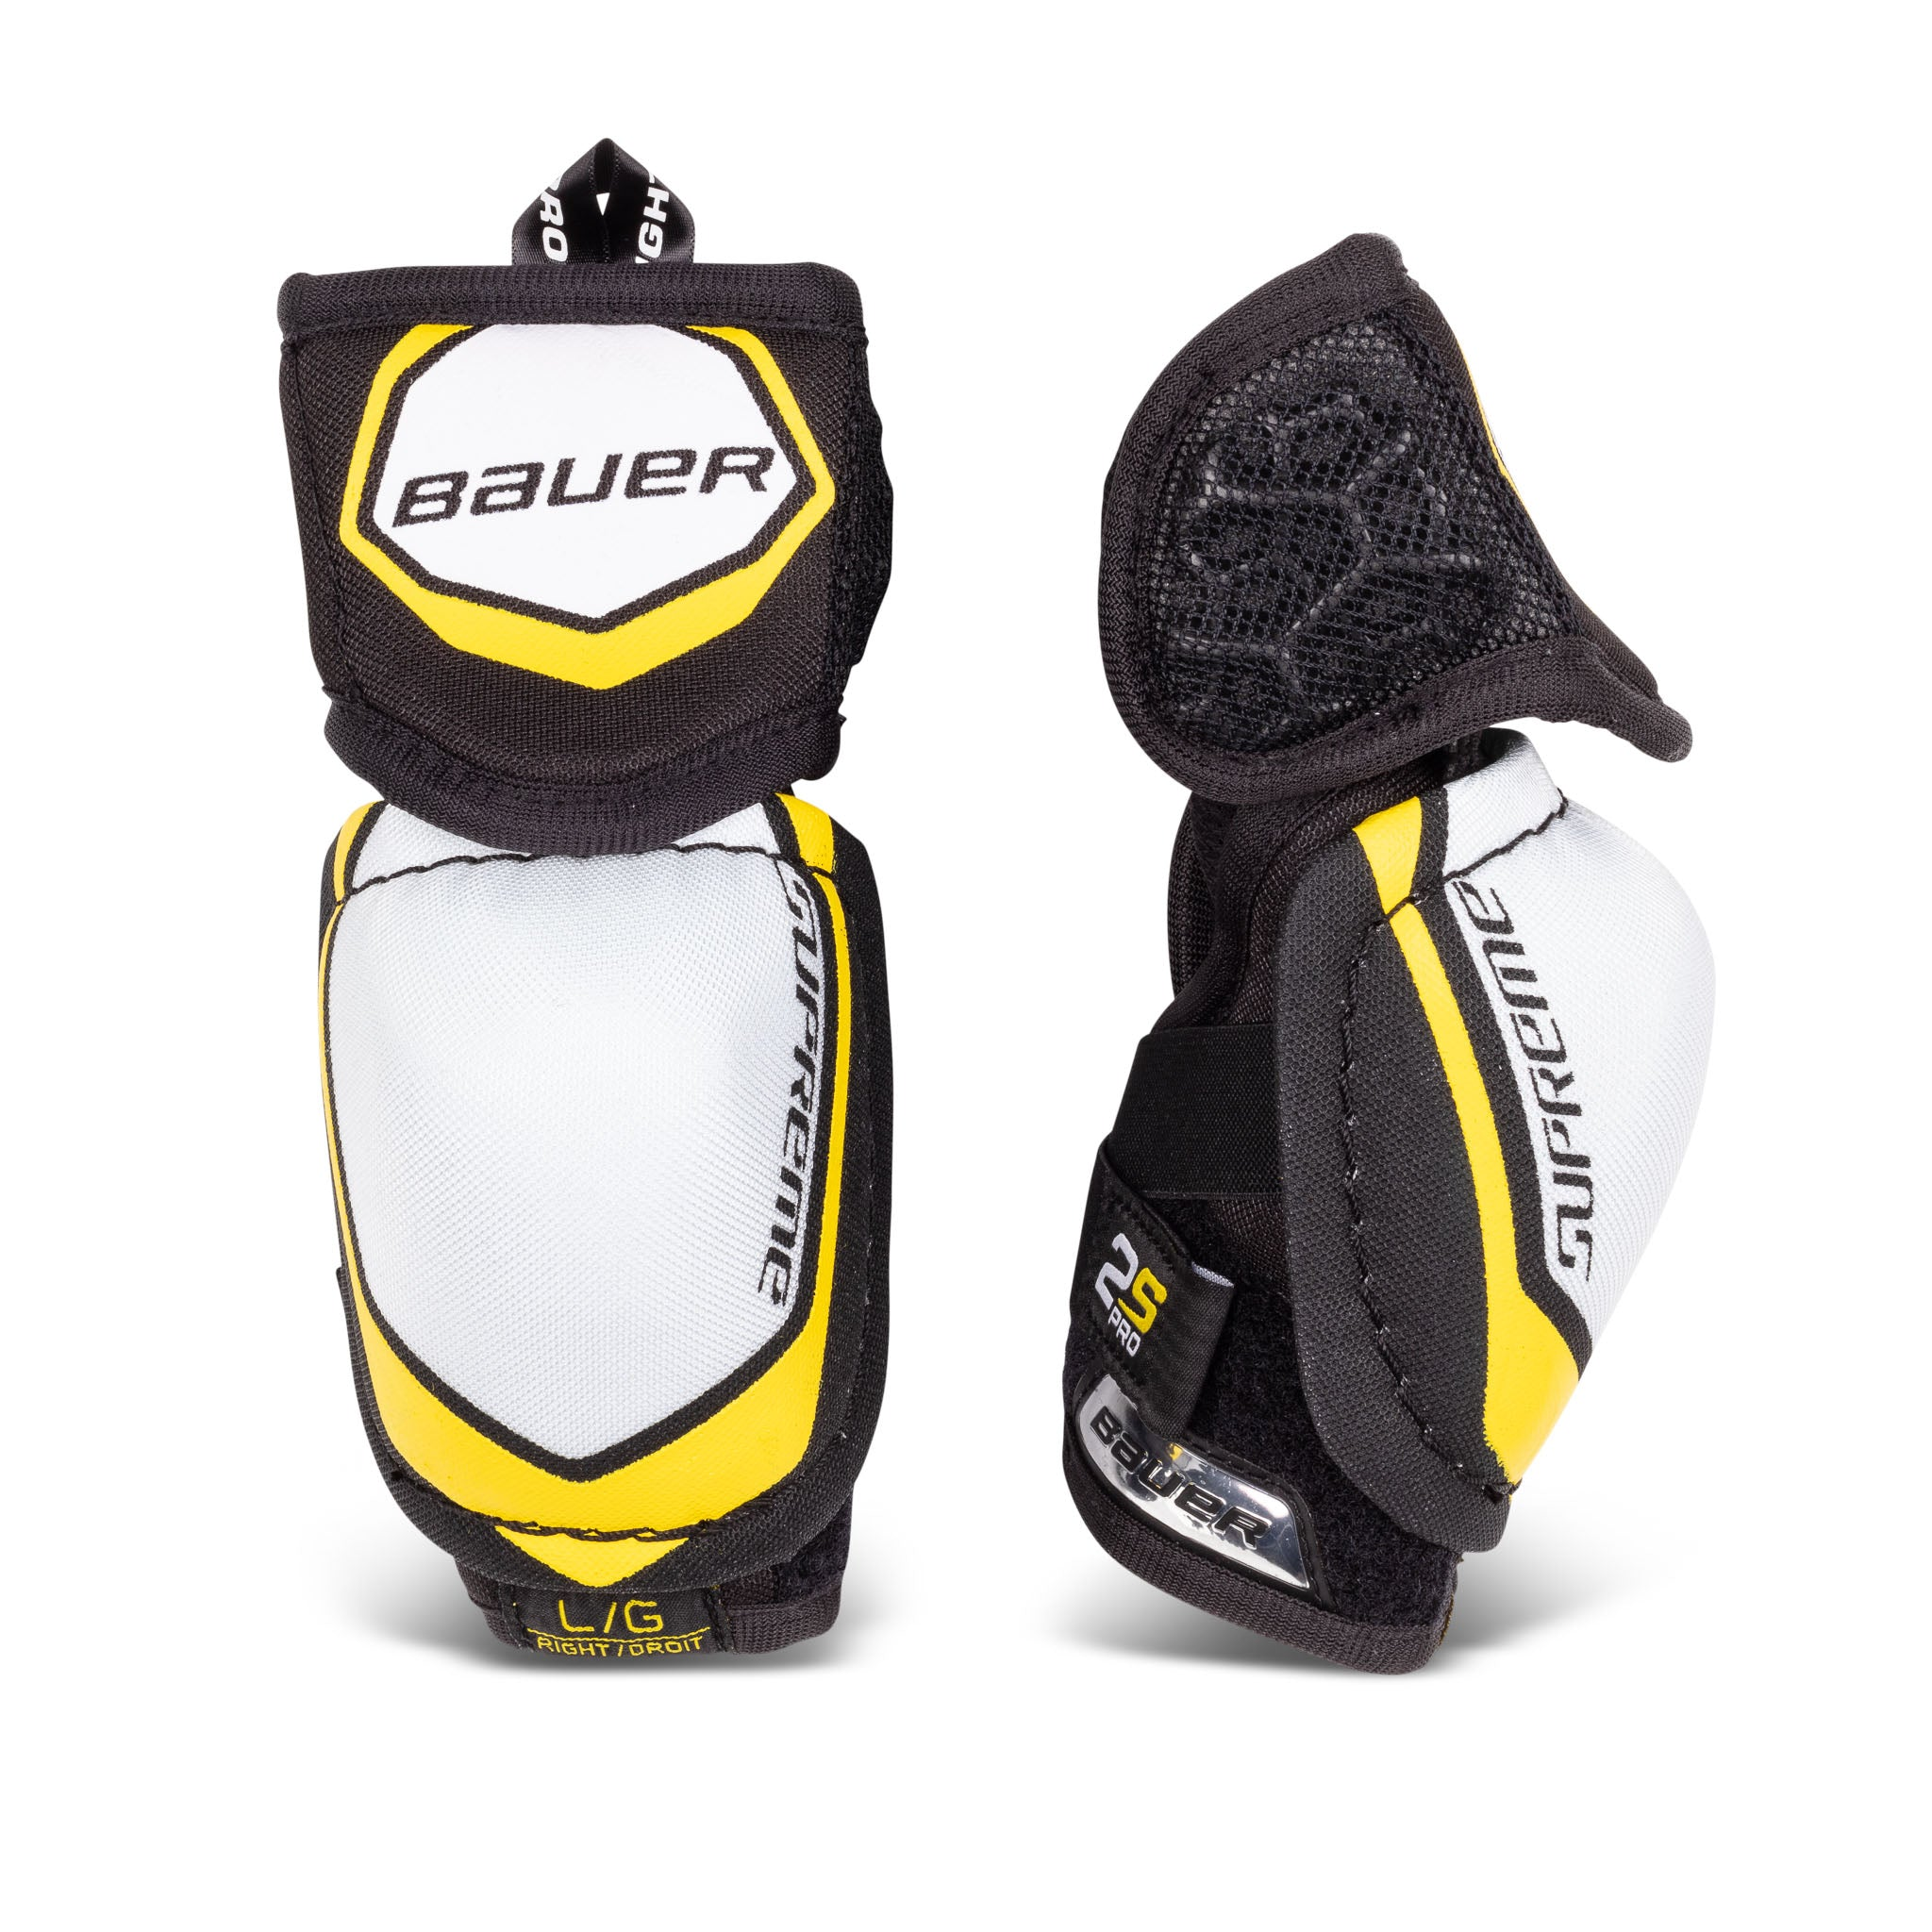 Bauer Supreme 2S Pro Youth Hockey Elbow Pads